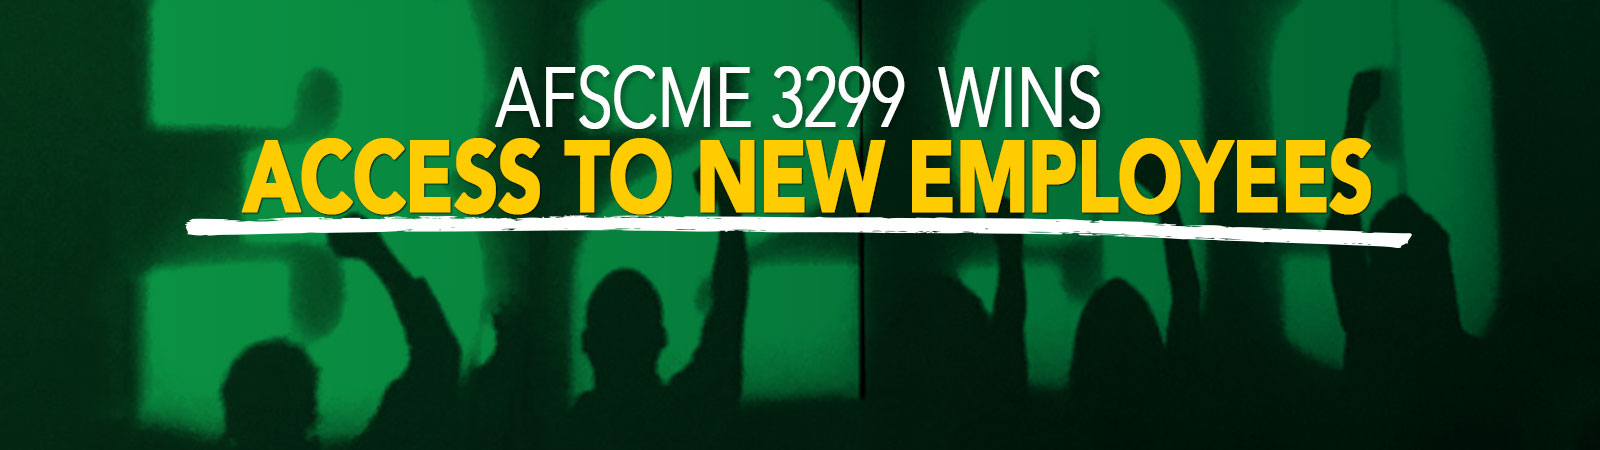 3299 Wins Access to New Employees